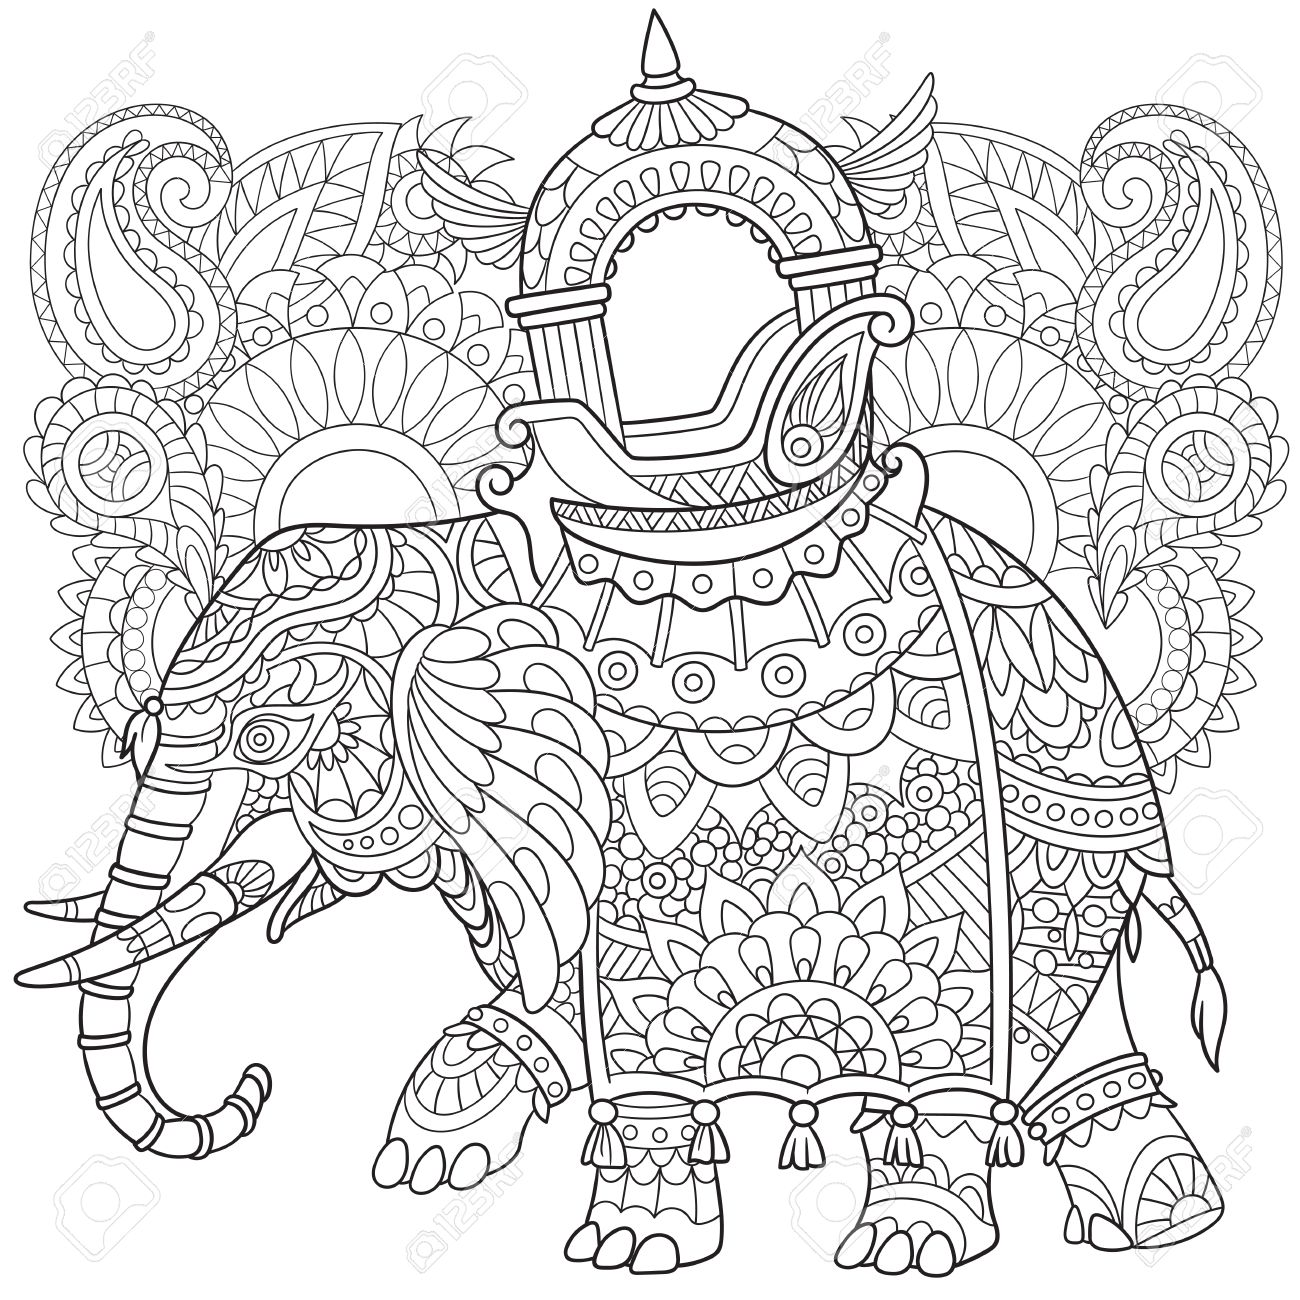 Cartoon Elephant With Paisley And Mehndi Symbols. Sketch For ...